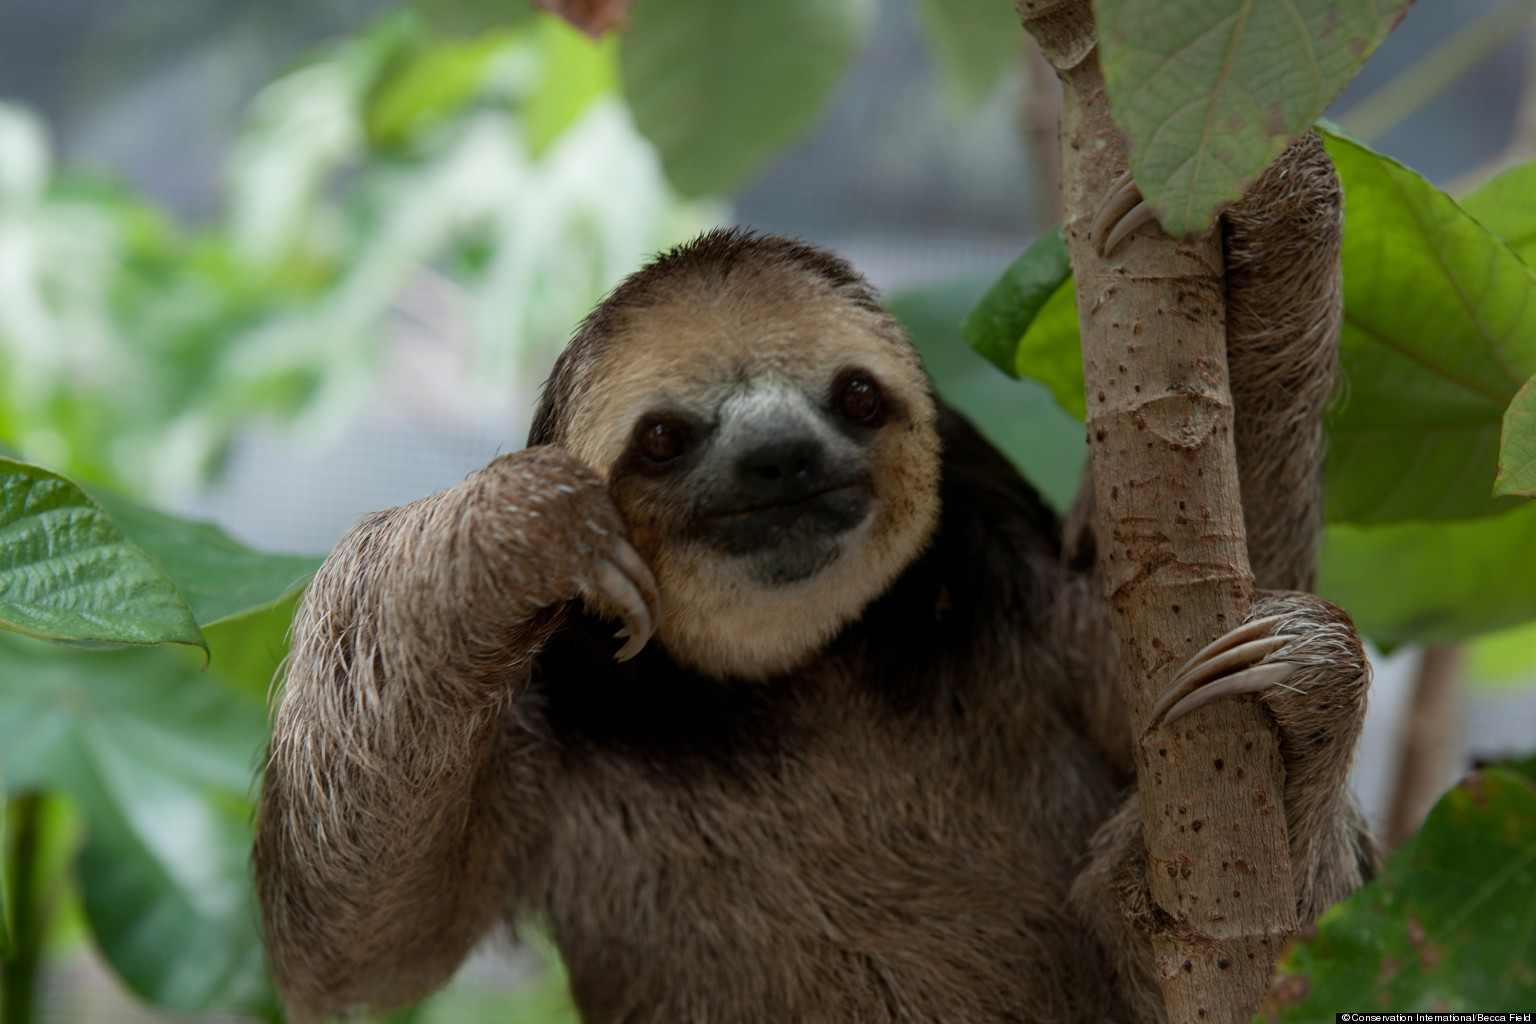 o-PHOTOS-OF-SLOTHS-facebook.jpg